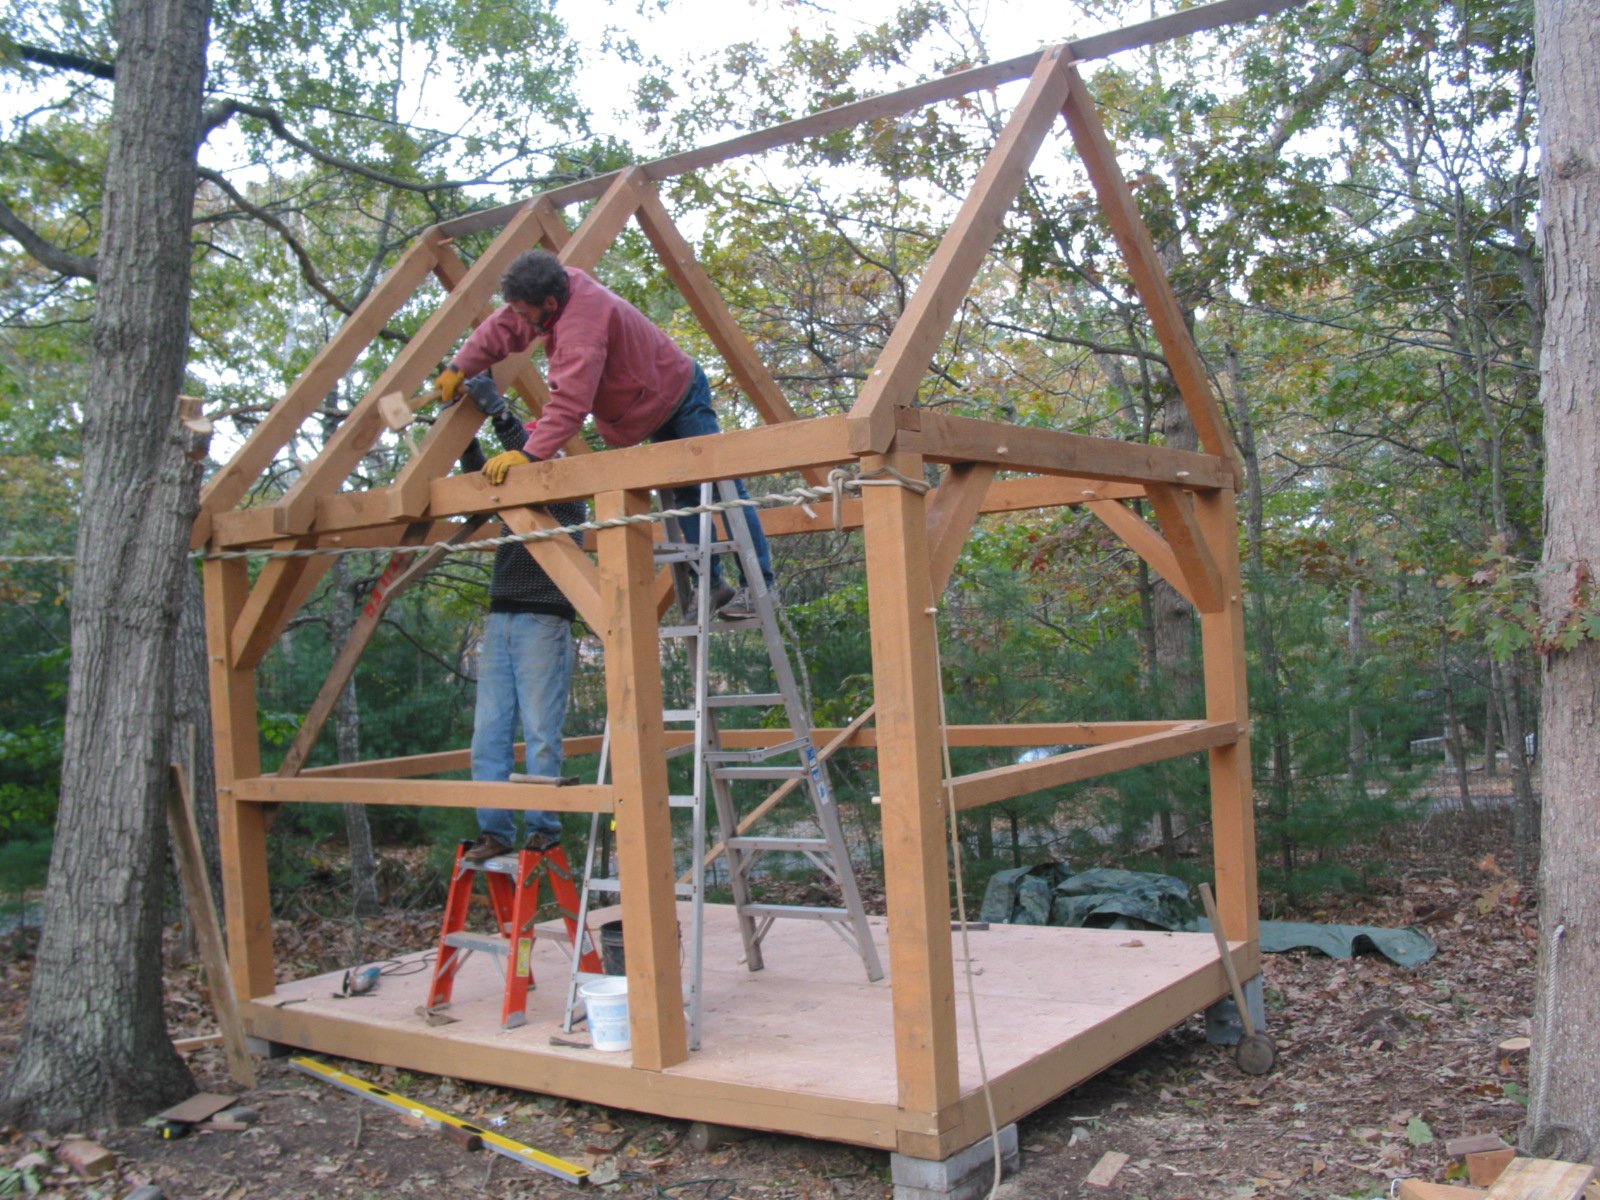 Relaxshackscom A NEW timber framed cottagecabintiny